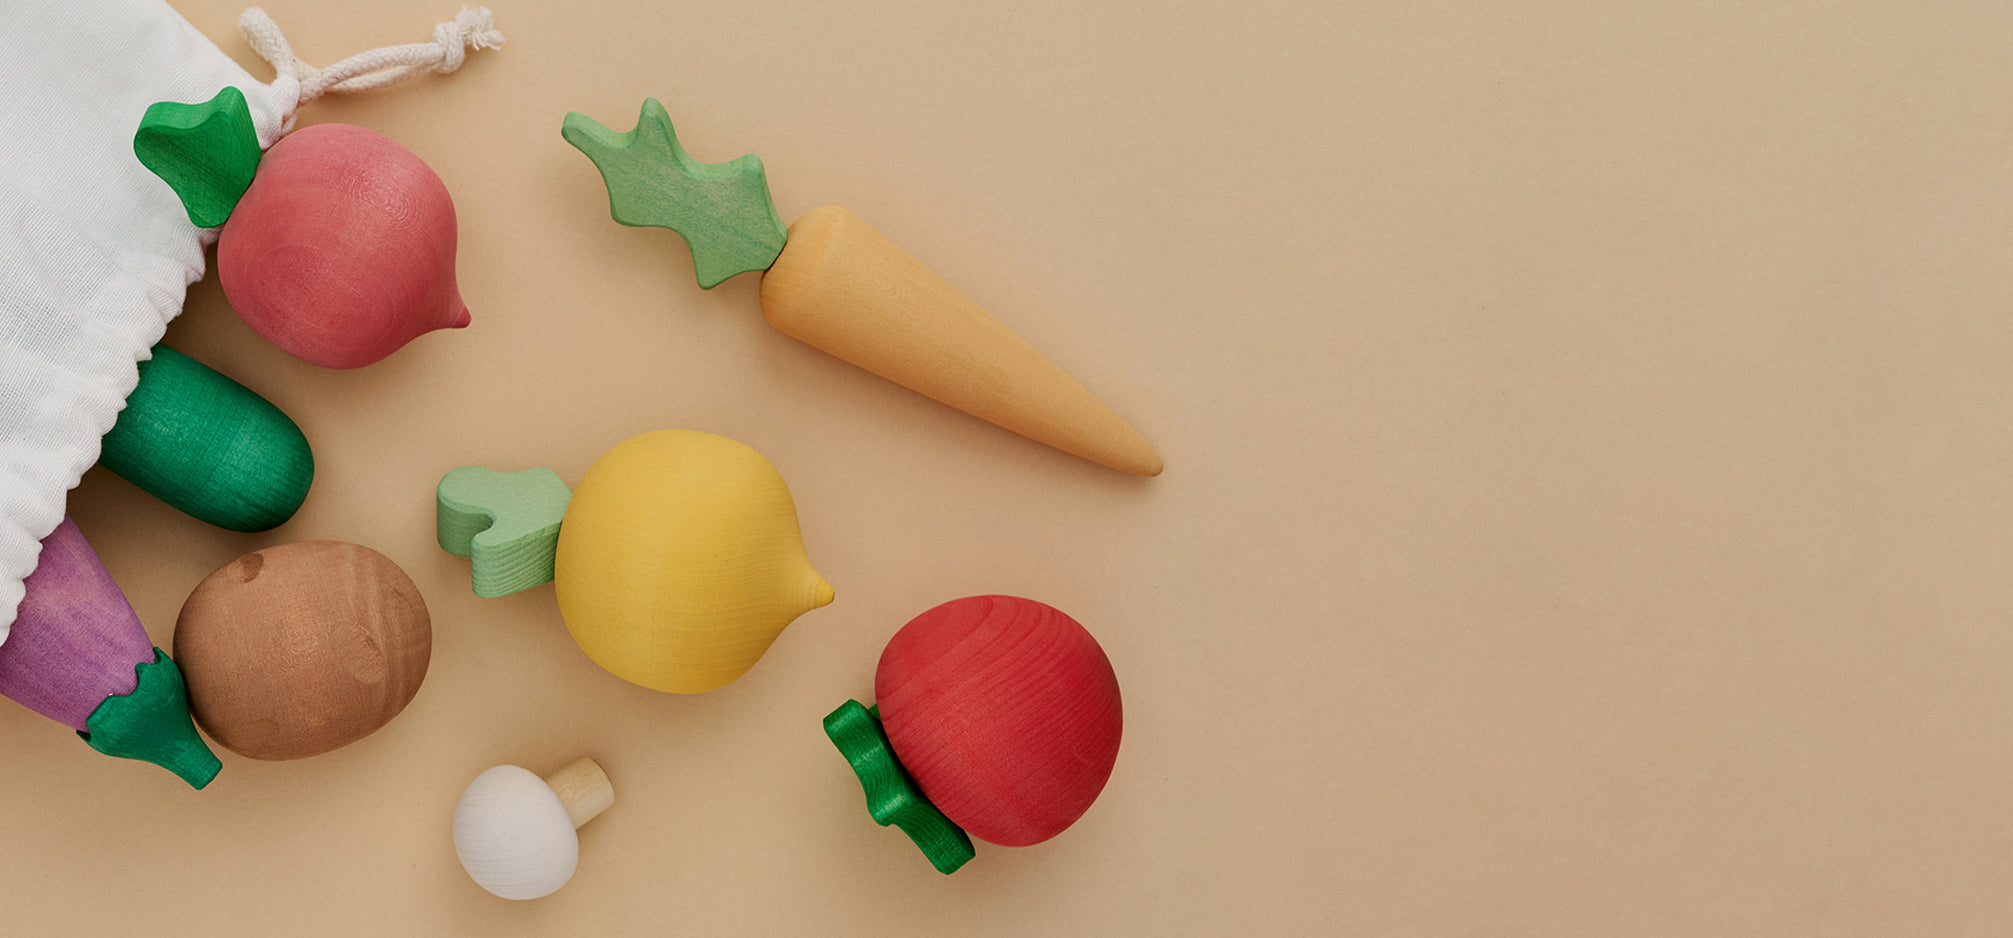 Painted wooden fruit toys coming out of a cloth bag.